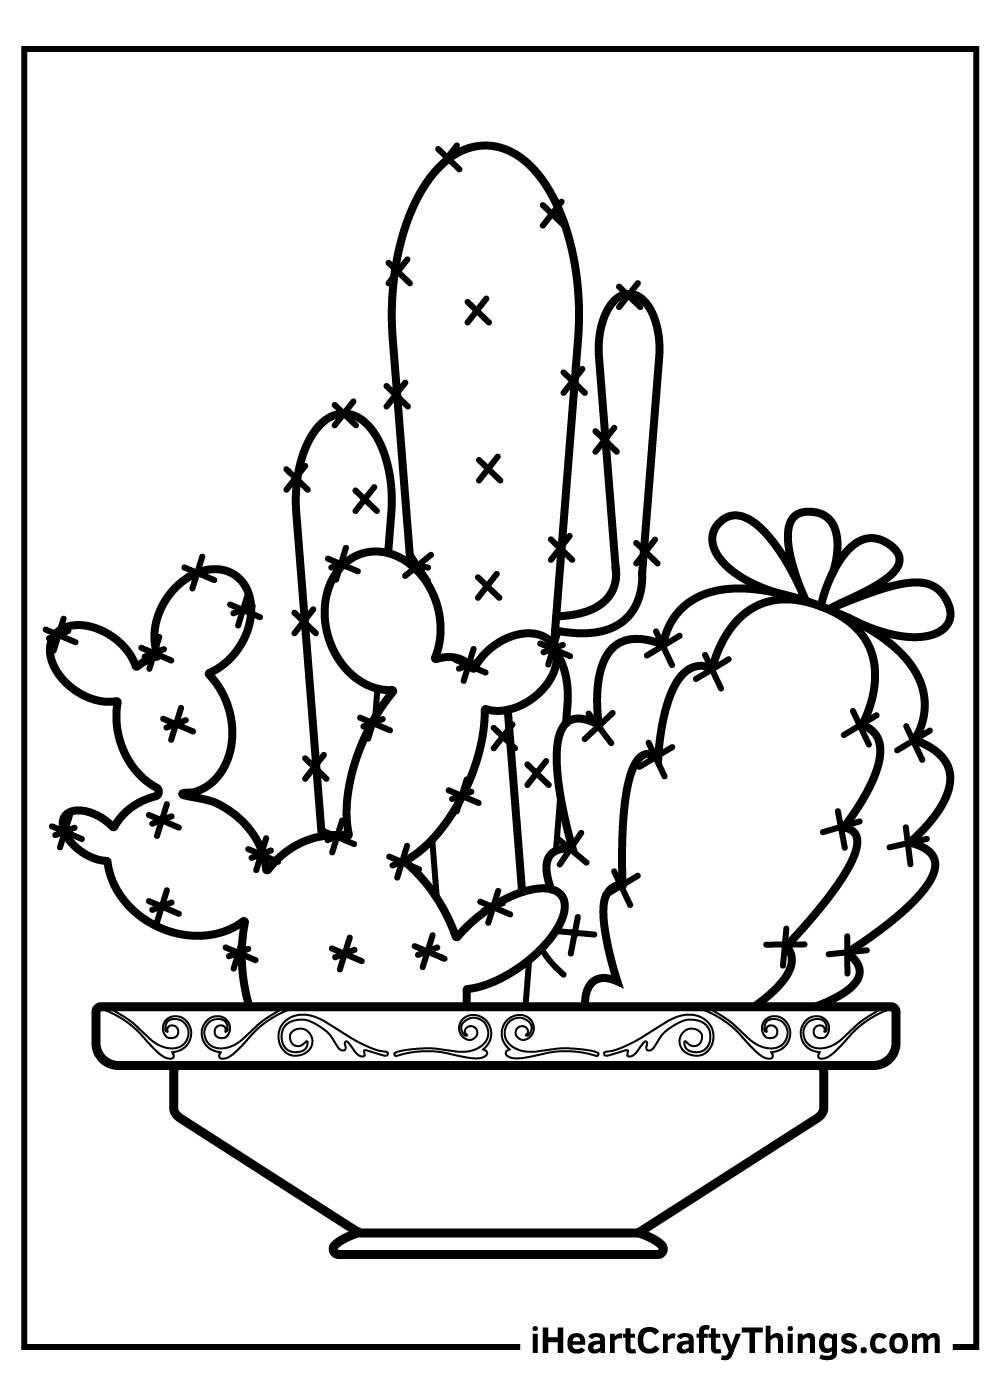 free printable cute cactus coloring pages